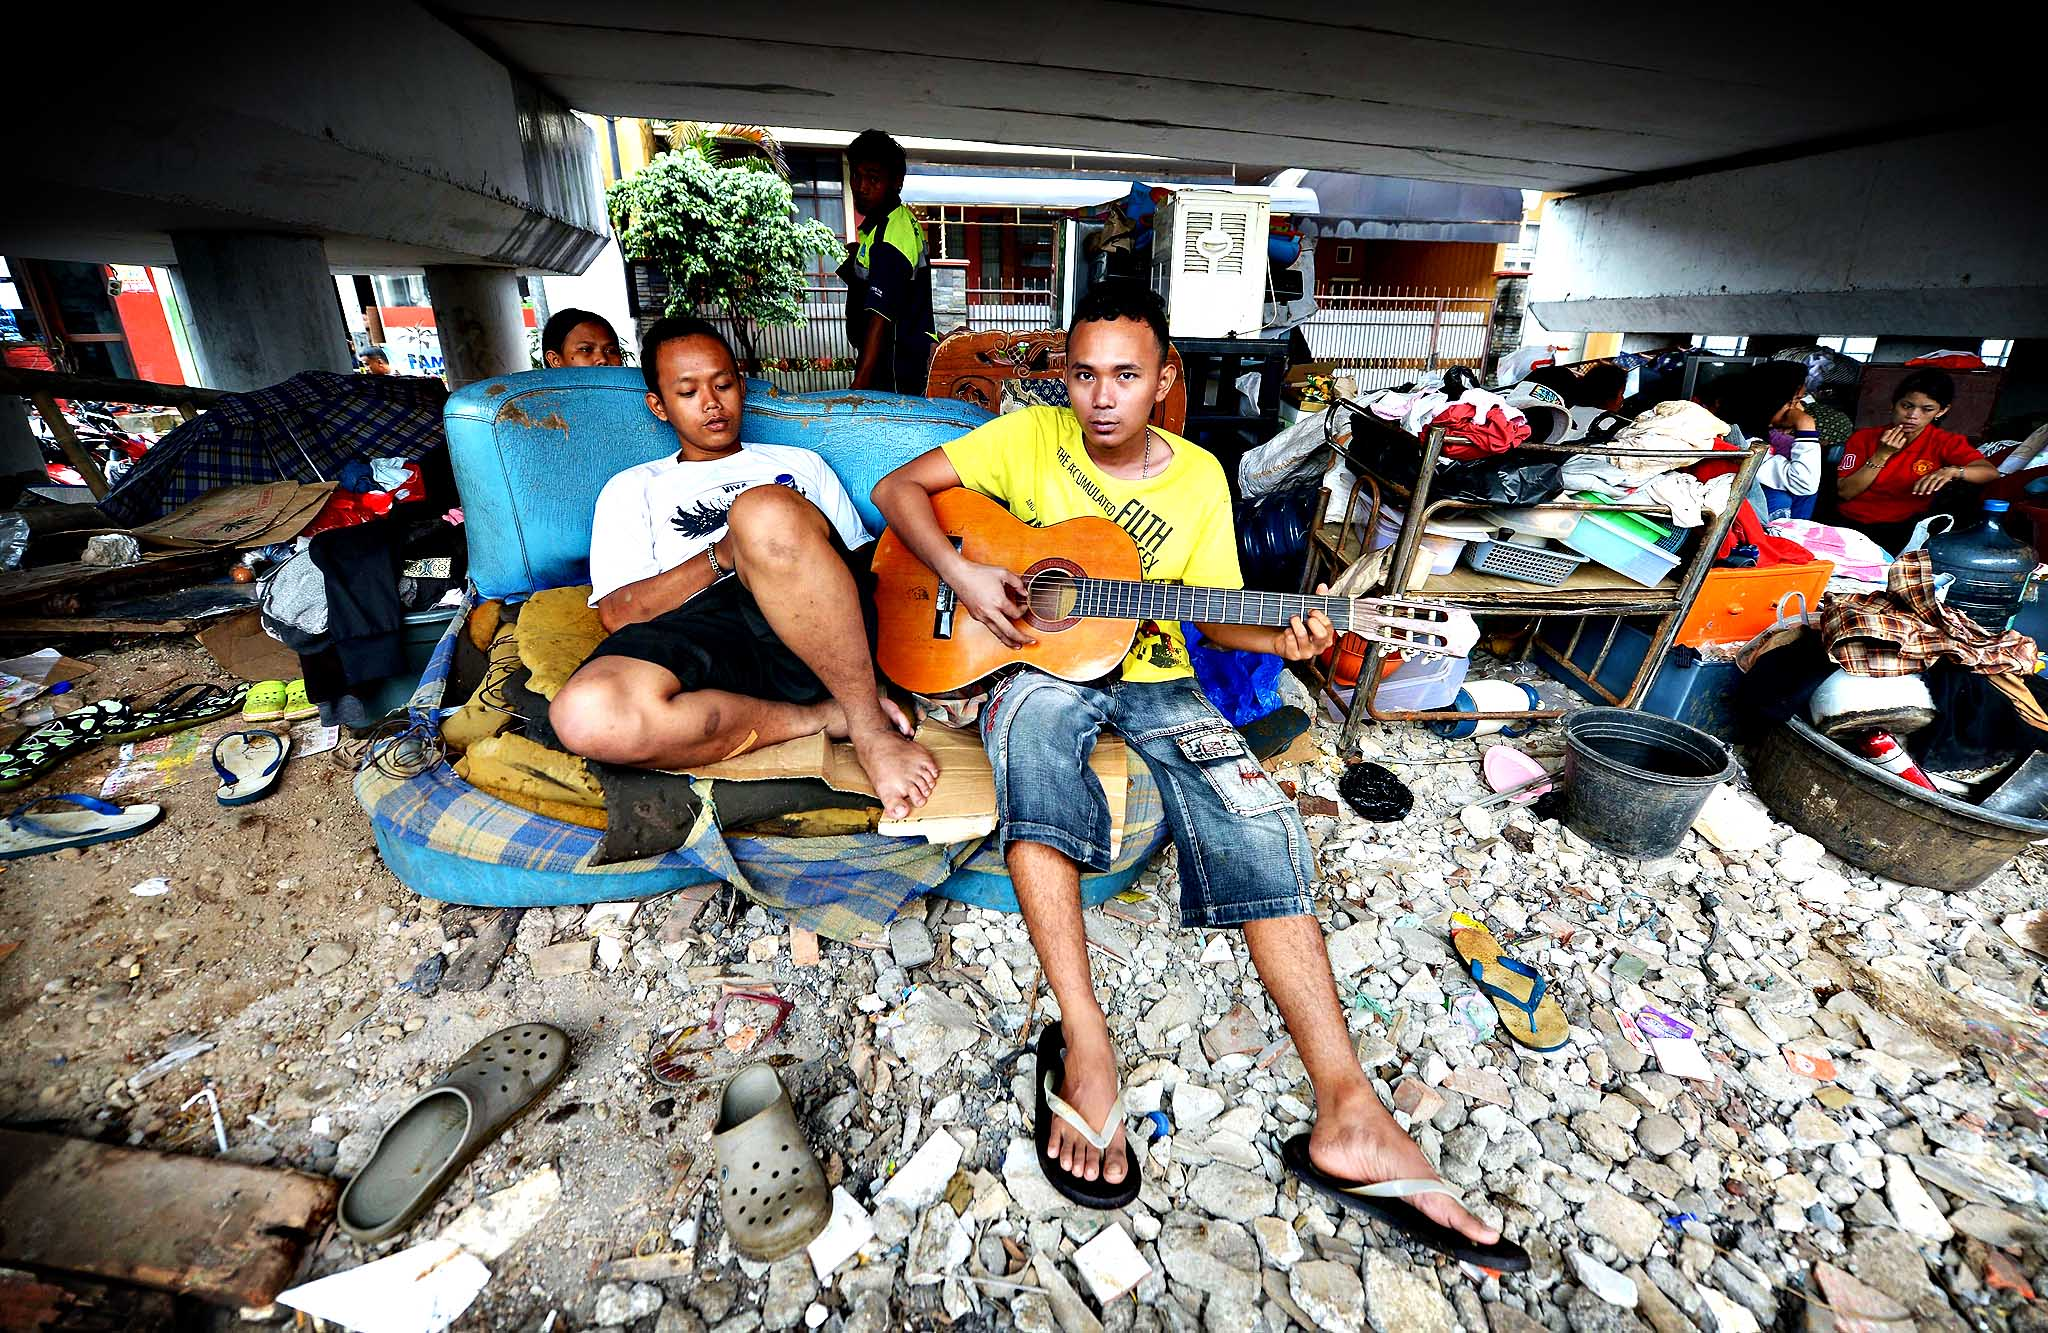 A man plays a guitar as flood affected people seek refuge under a bridge in Jakarta on January 21, 2014. More than 4,300 people in the capital have been displaced by the floods, which also worsened the city's notorious traffic jams.